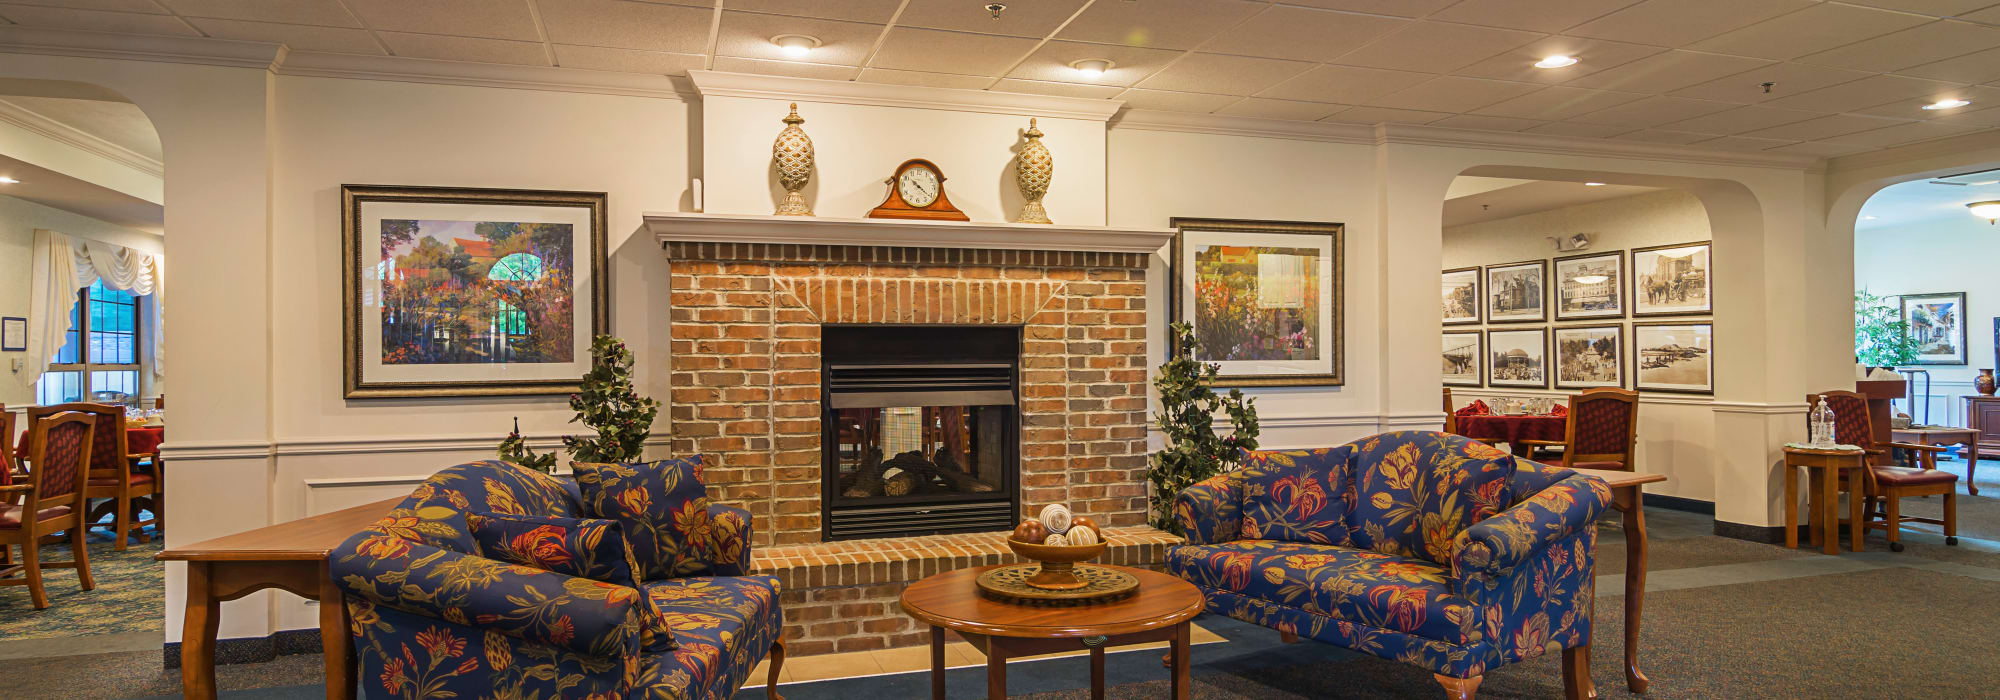 Concierge Services at the Assisted Living and Memory Care Community in Michigan City